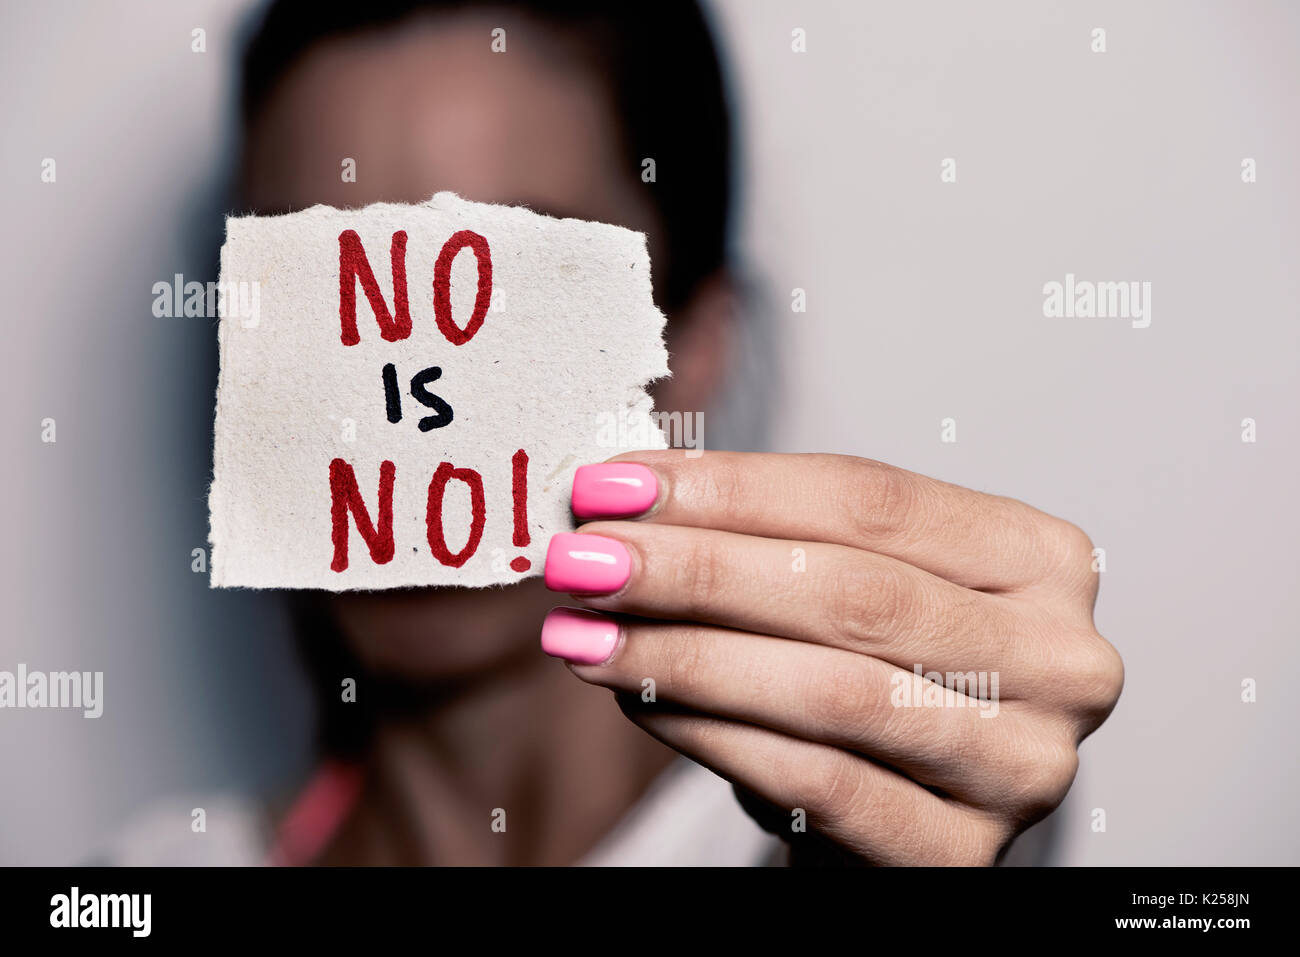 closeup of a young caucasian woman with pink polished nails holding a piece of paper with the text no is no written in it, in front of her face - Stock Image